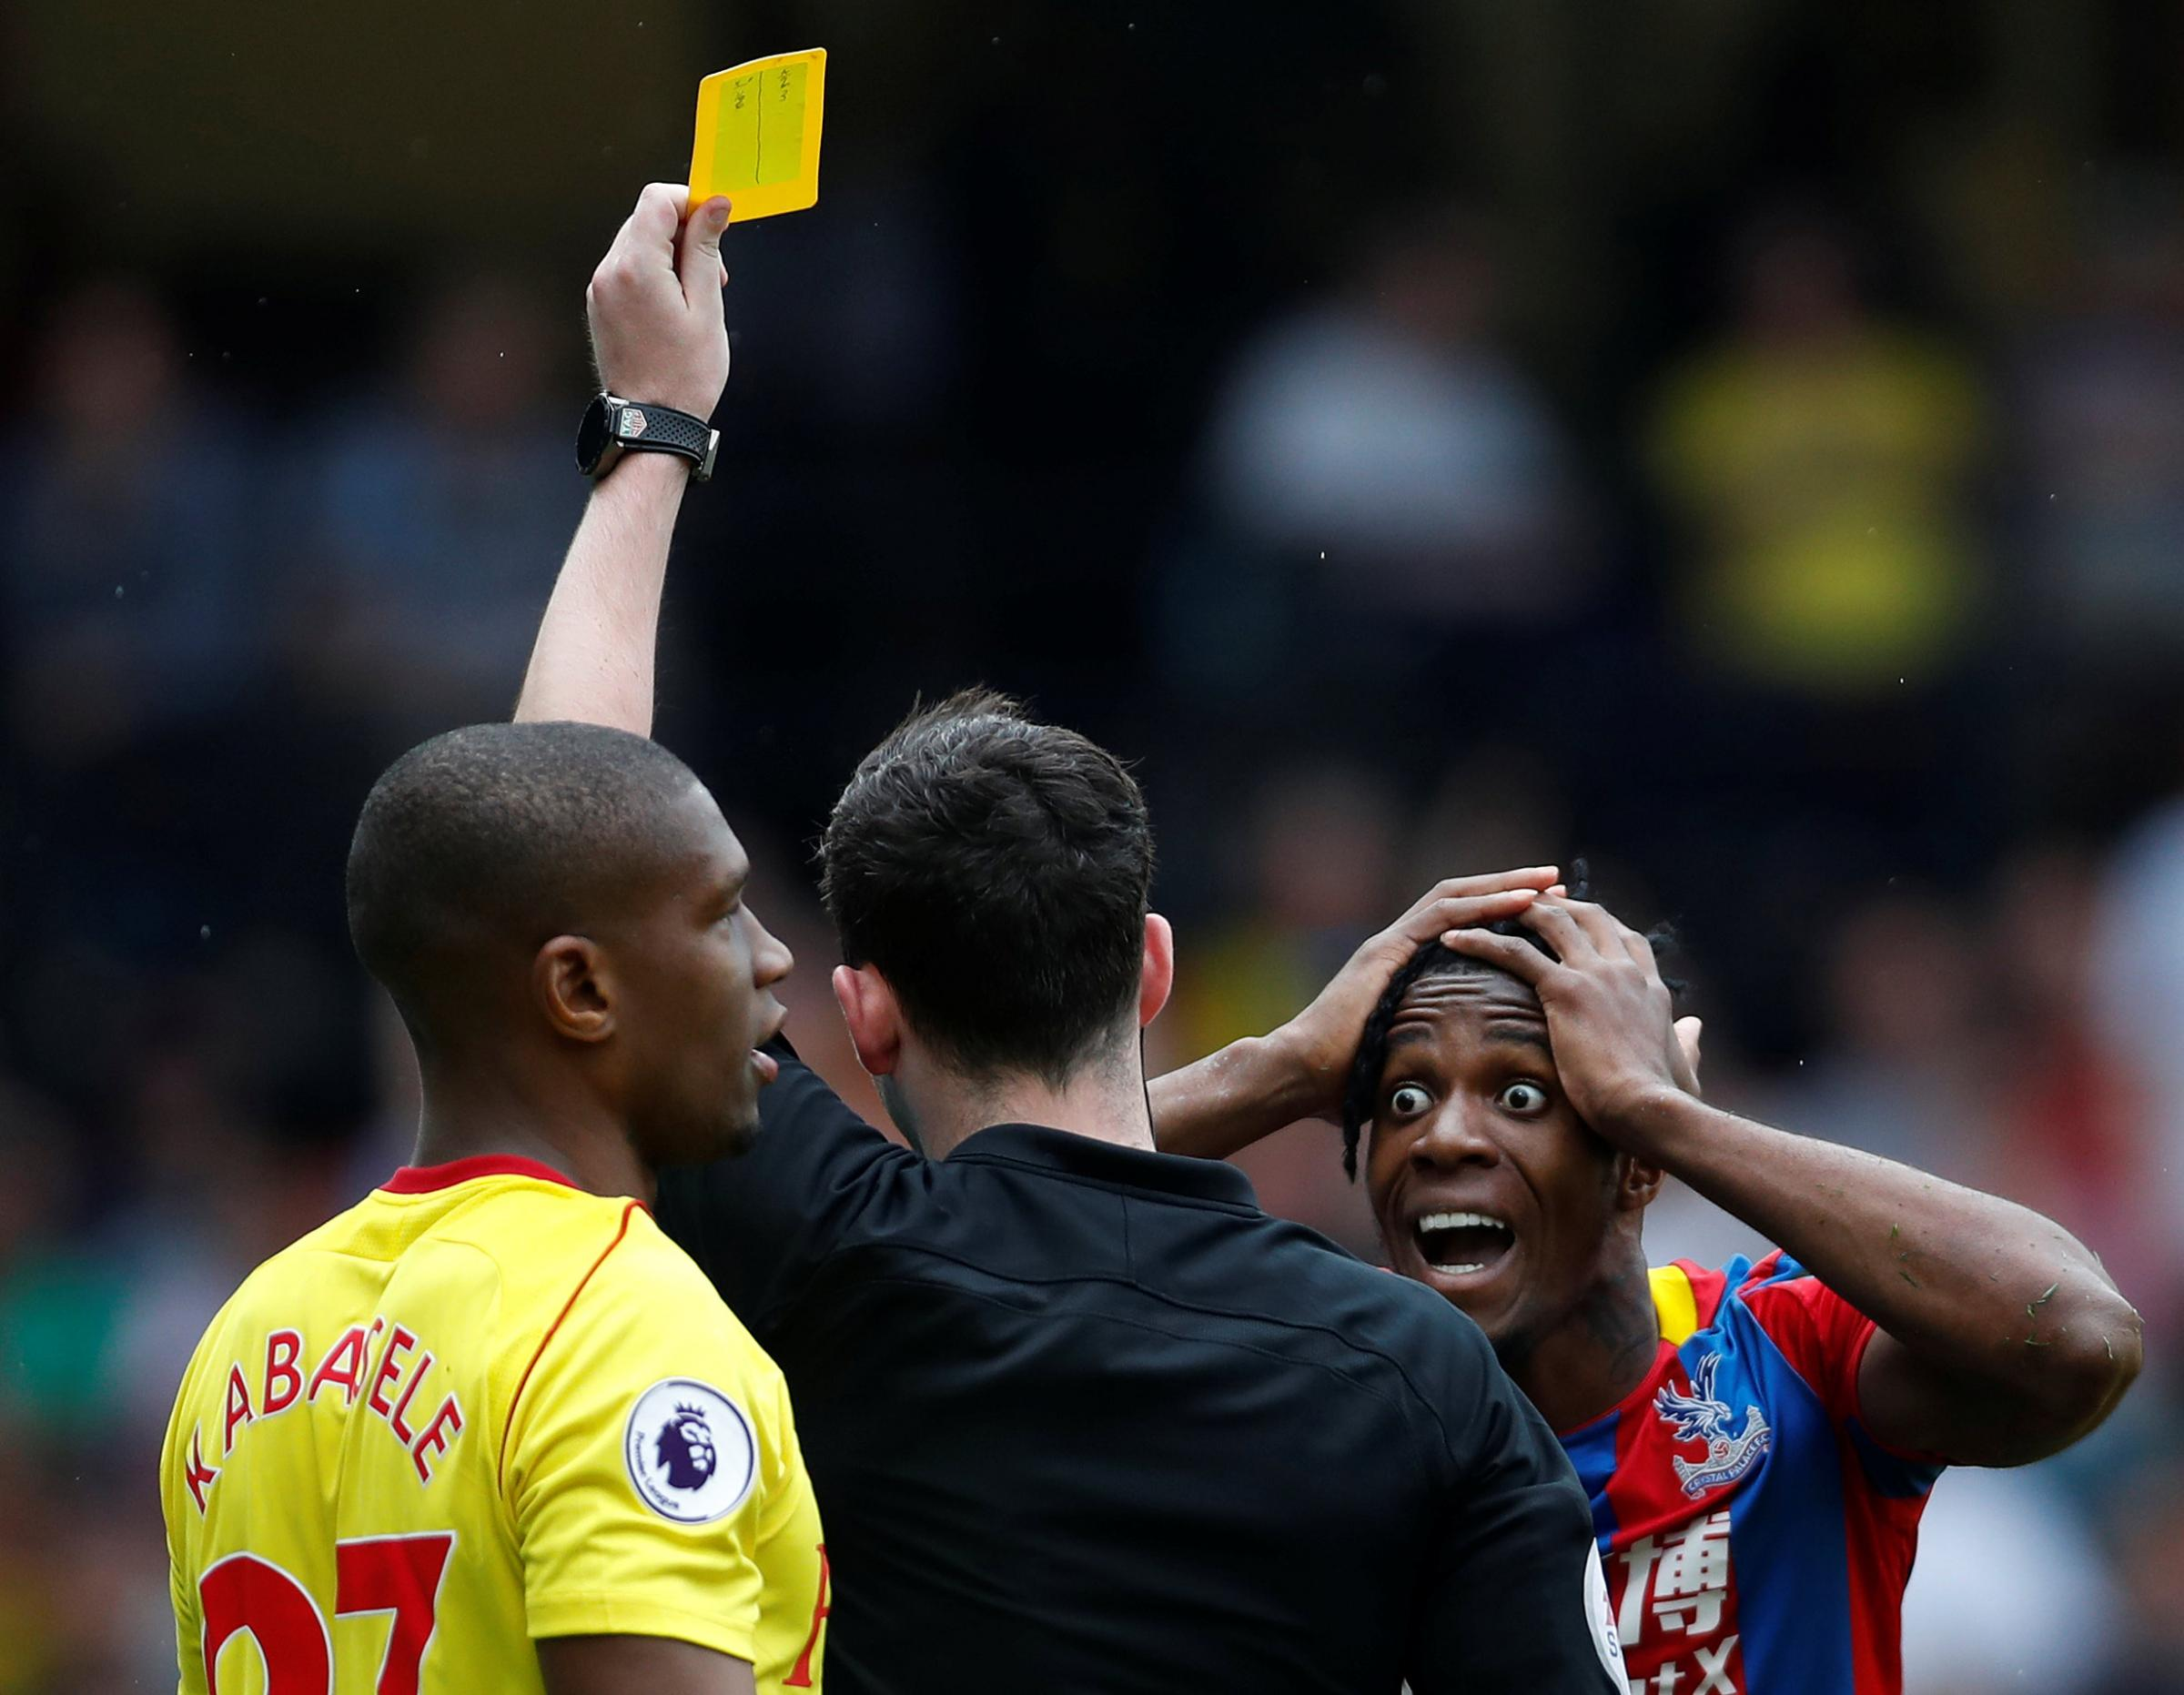 Wilfried Zaha can't believe he's being booked for simulation by referee Chris Kavanagh. Pictures: Action Images